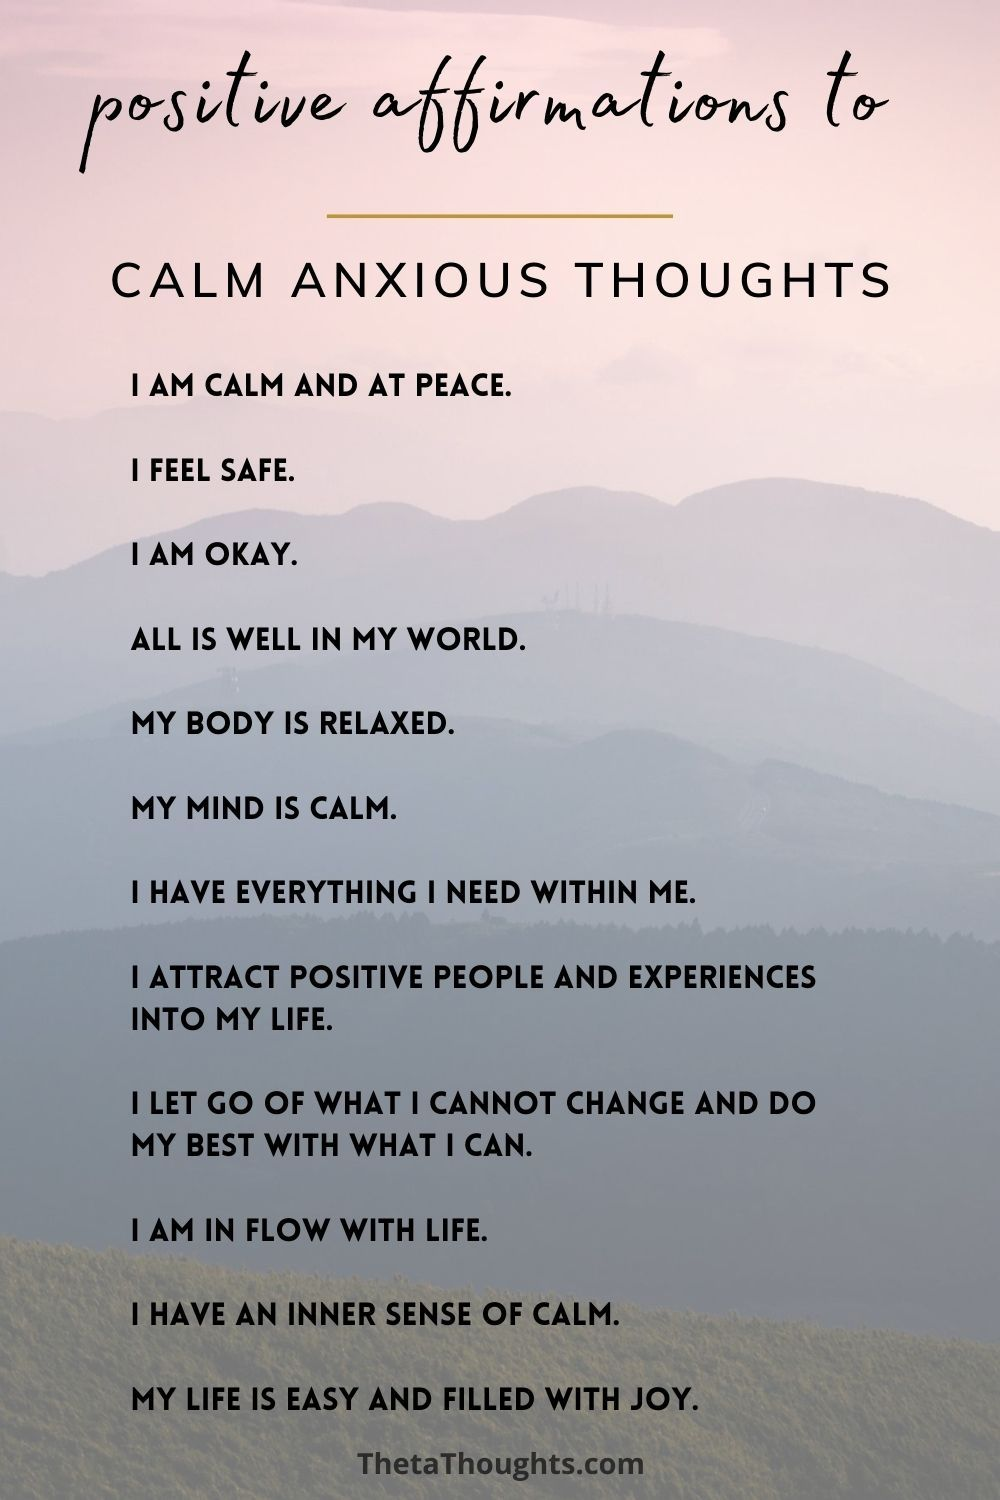 Calm Anxious Thoughts